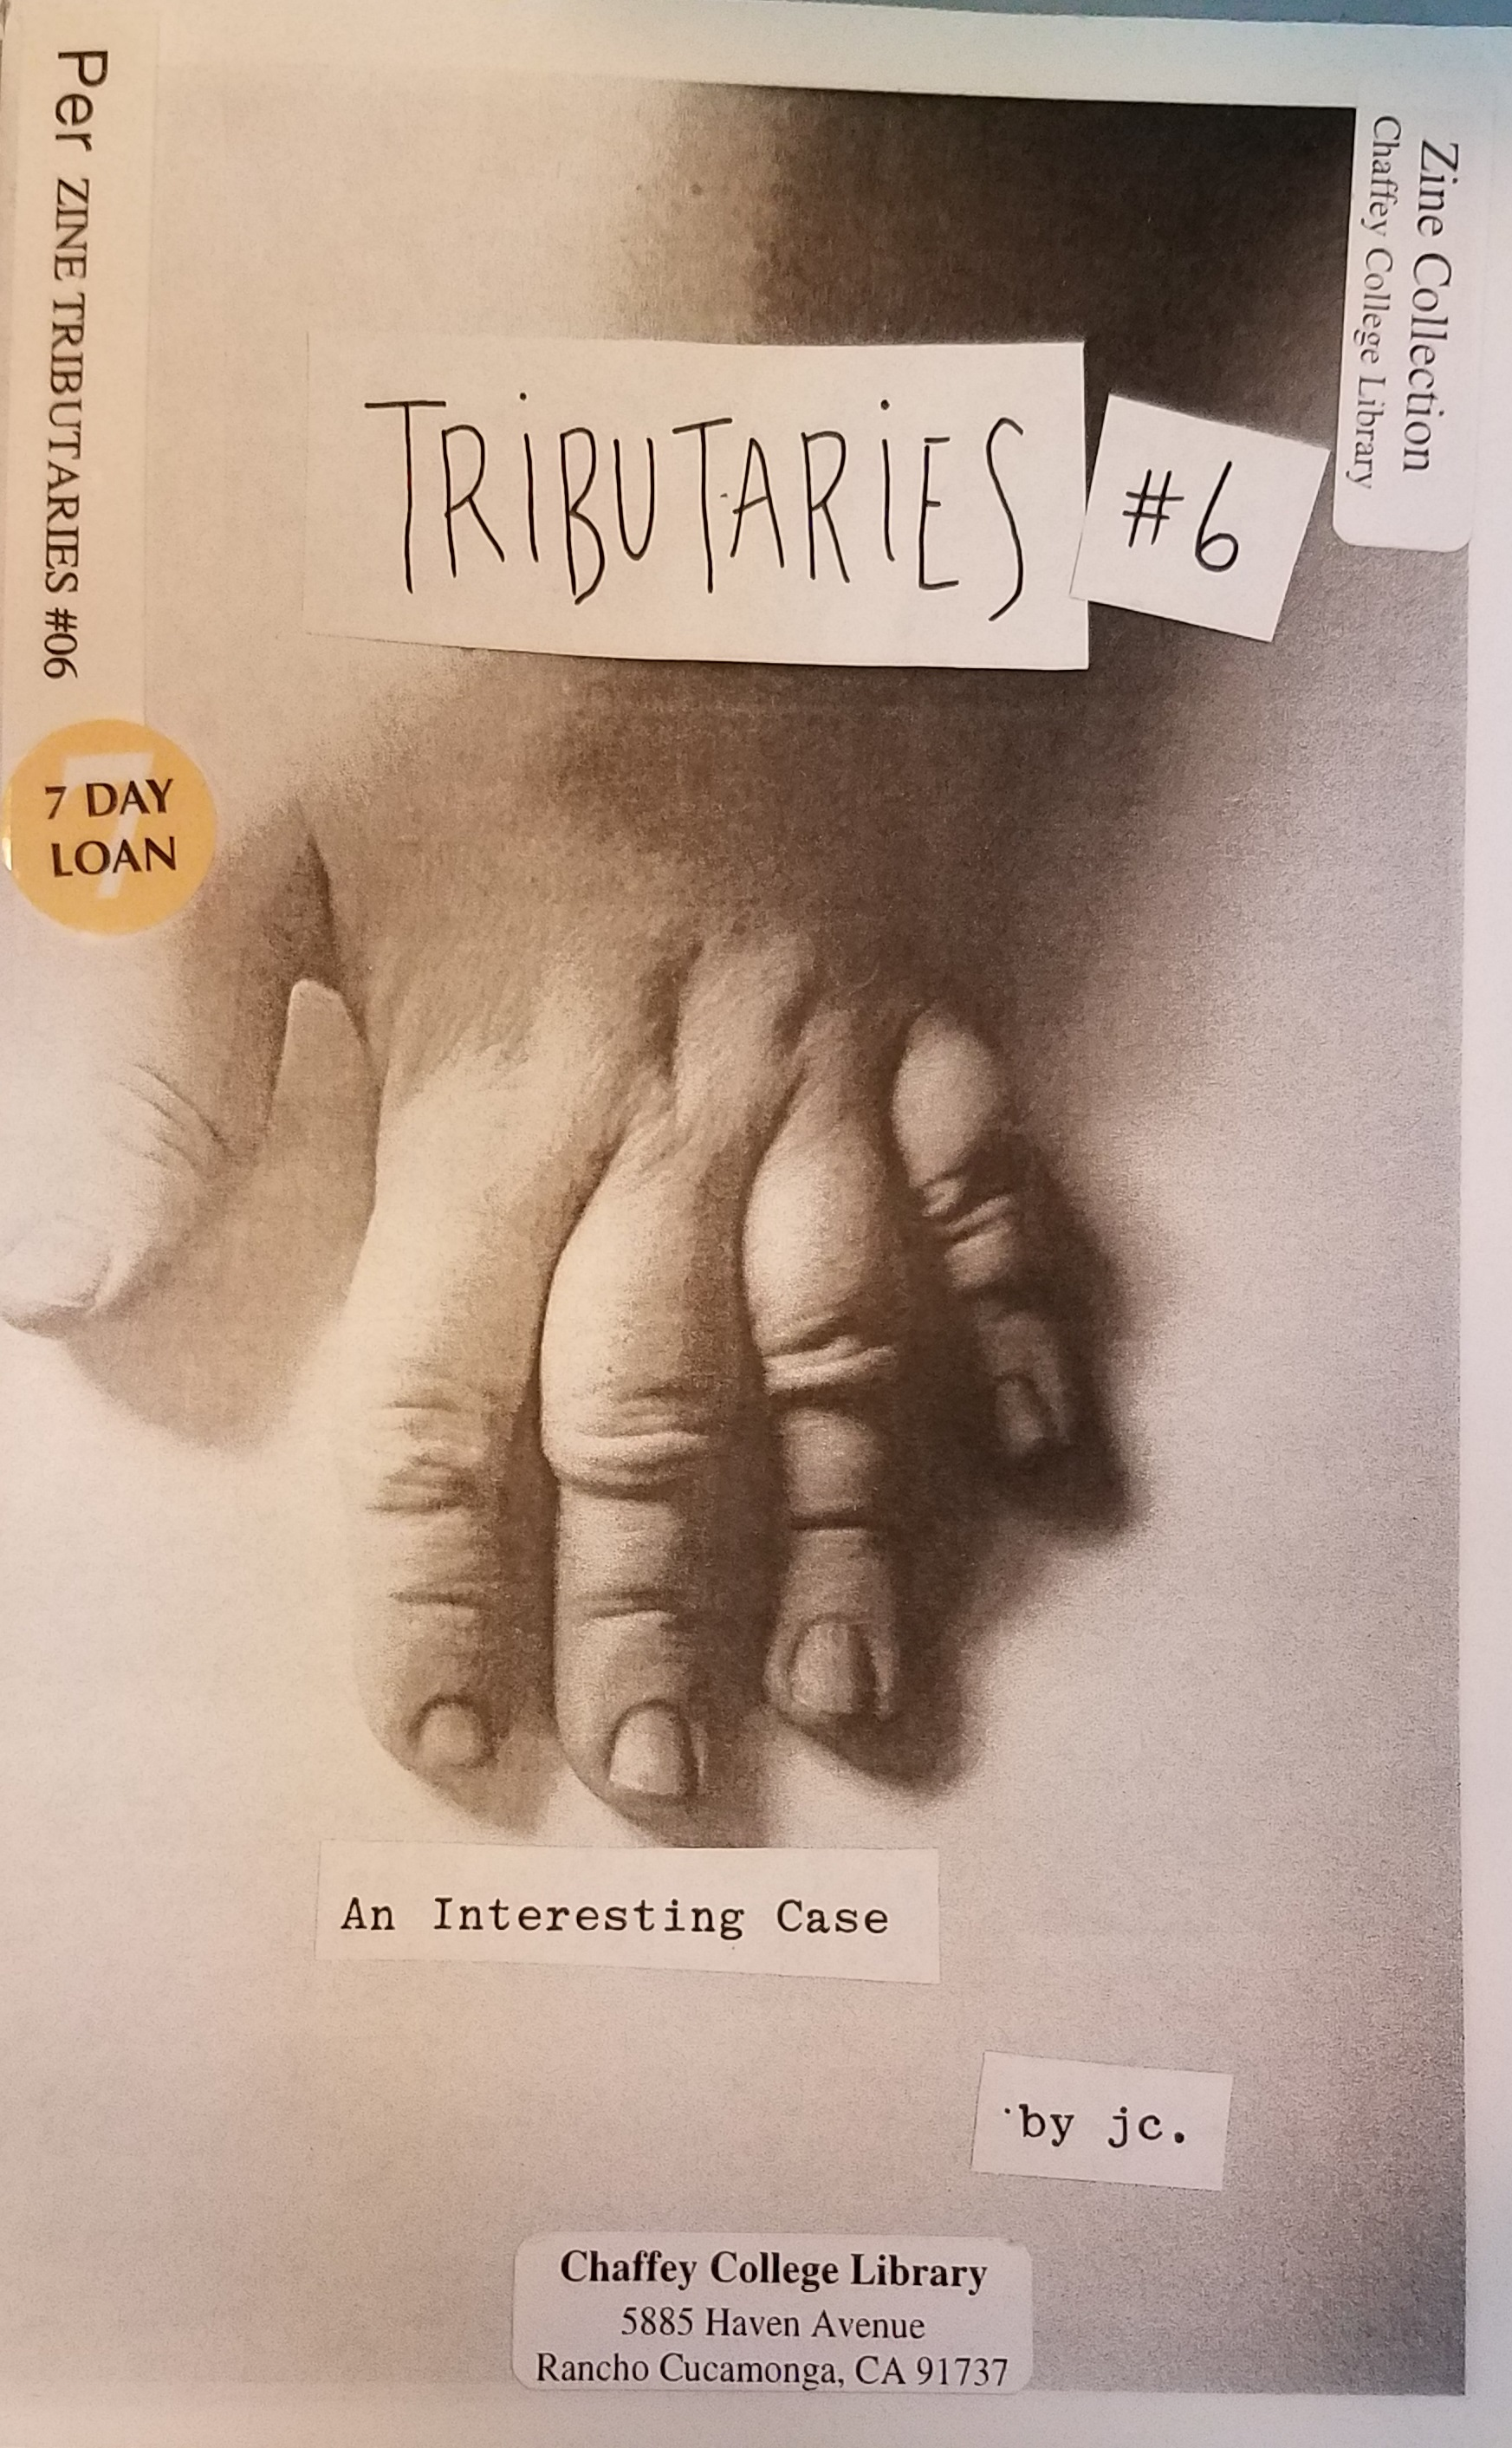 Tributaries #6 : an interesting case